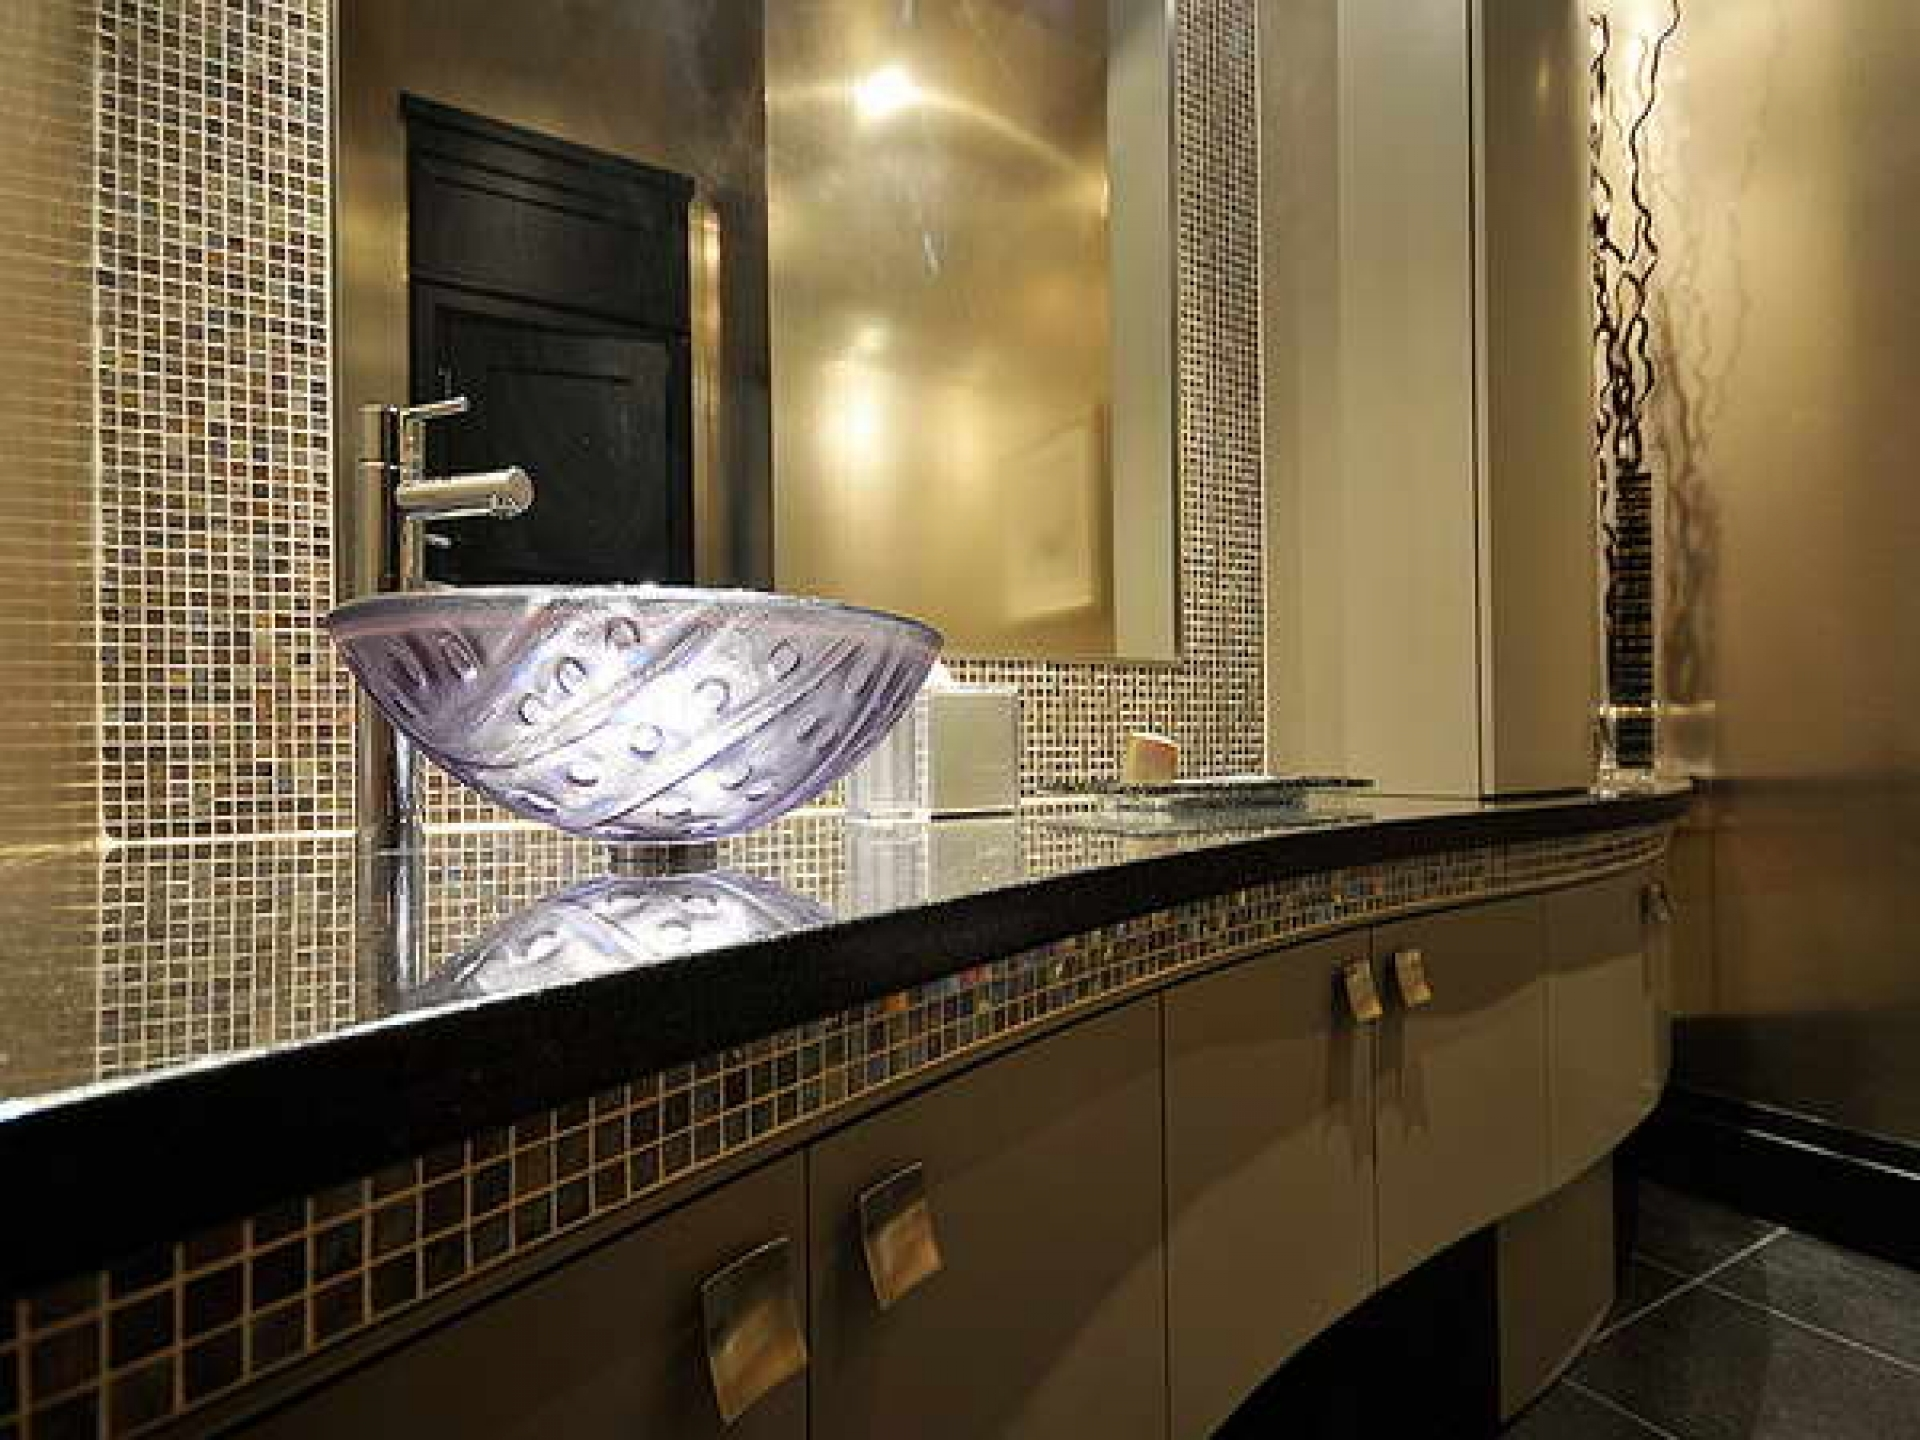 Ideas, bathroom elegant glass vessel vanity sink beige tile backsplash regarding sizing 1920 x 1440  .